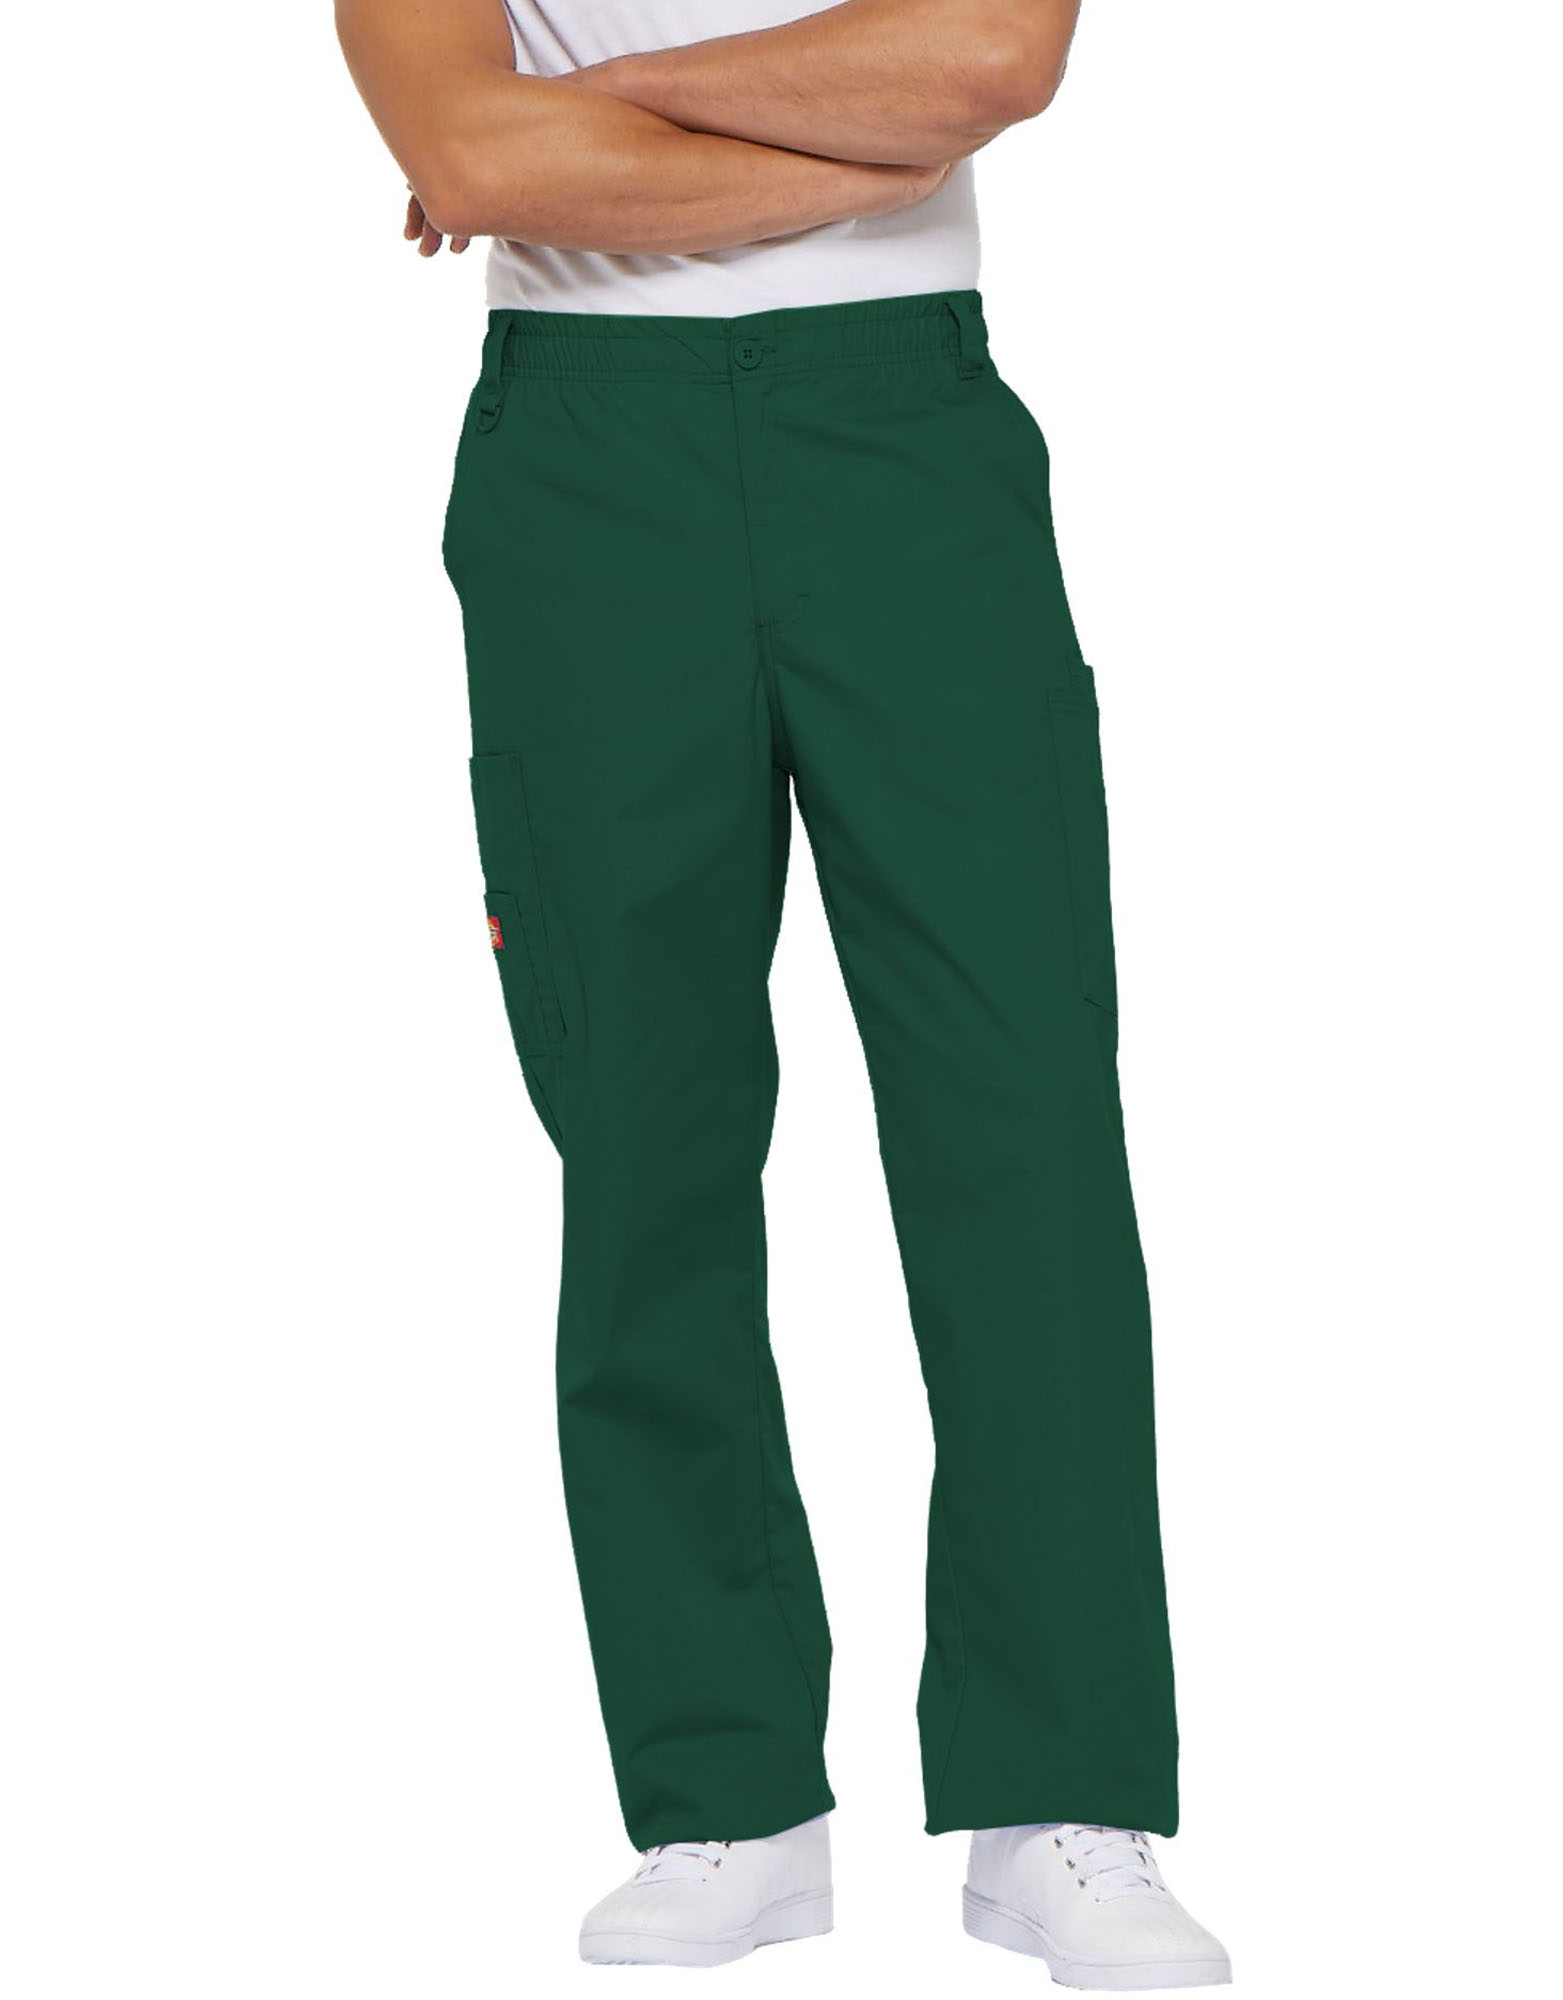 Men's EDS Signature Elastic Waist Cargo Scrub Pants - Hunter Green (HTR)